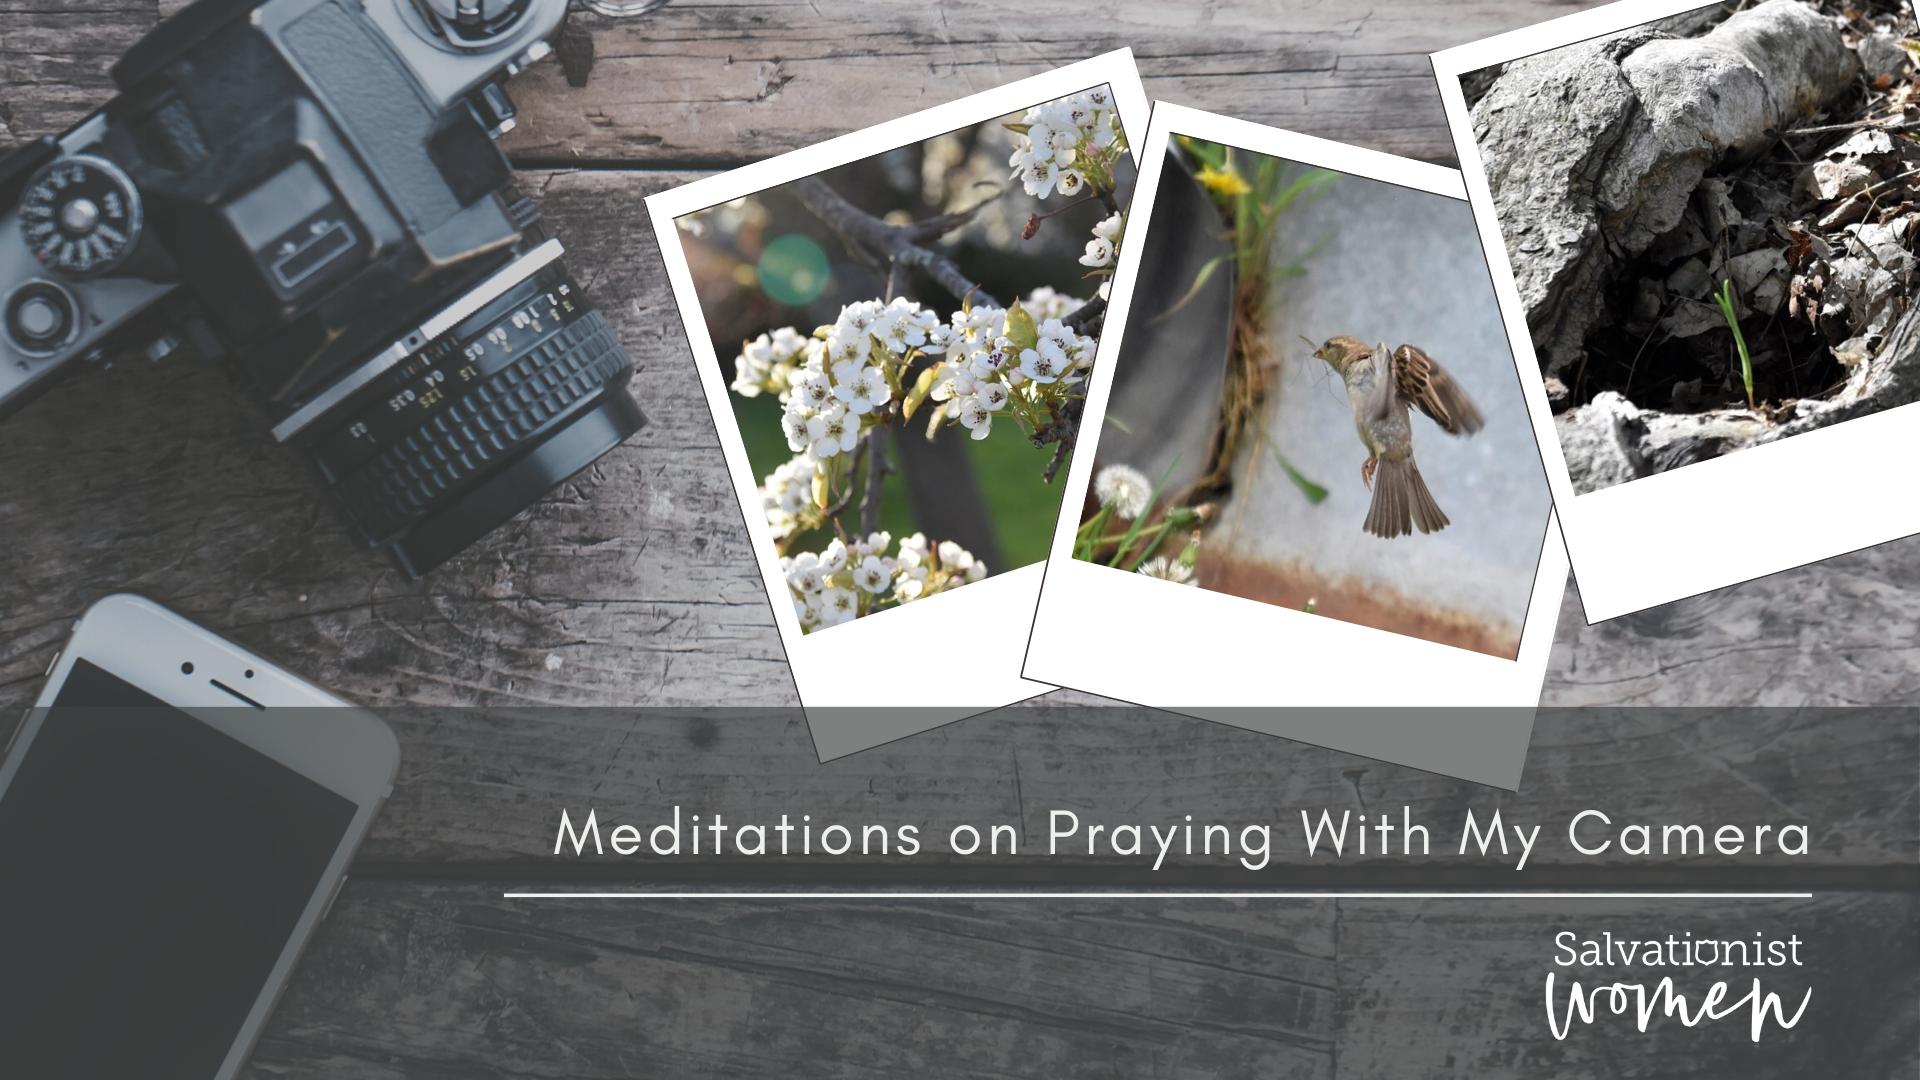 Meditations on Praying With My Camera